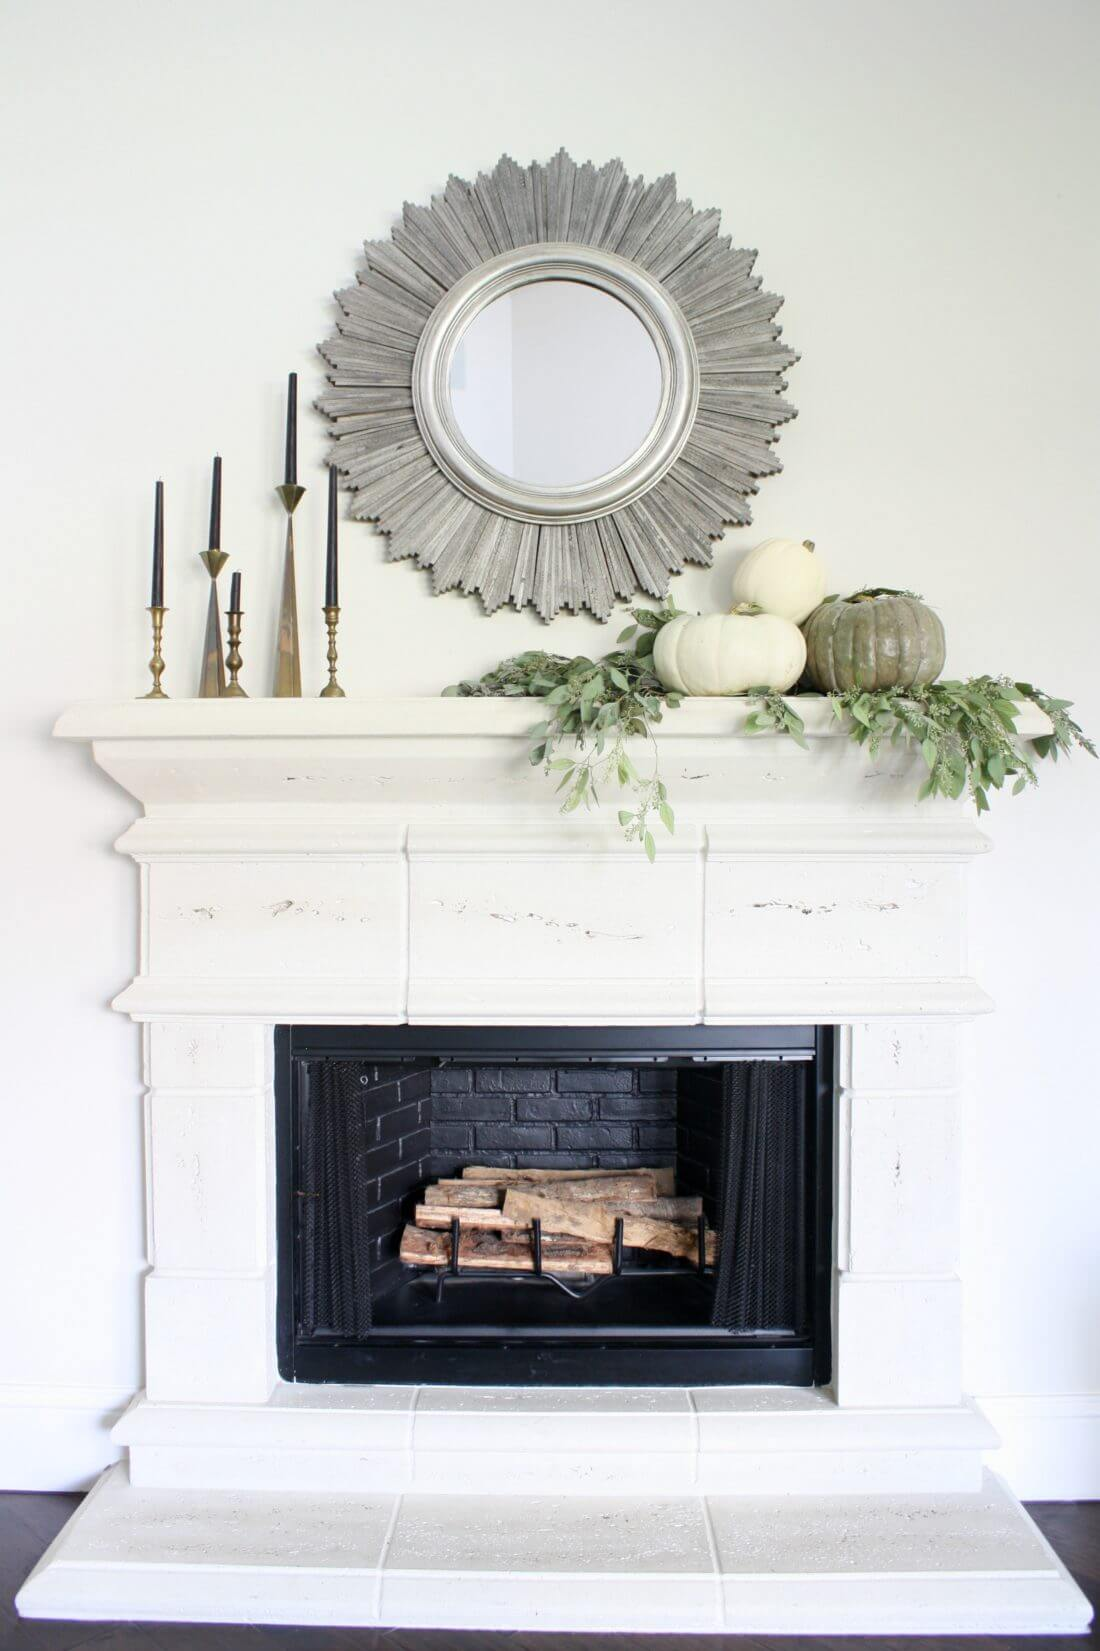 A Fireplace in White and Gray